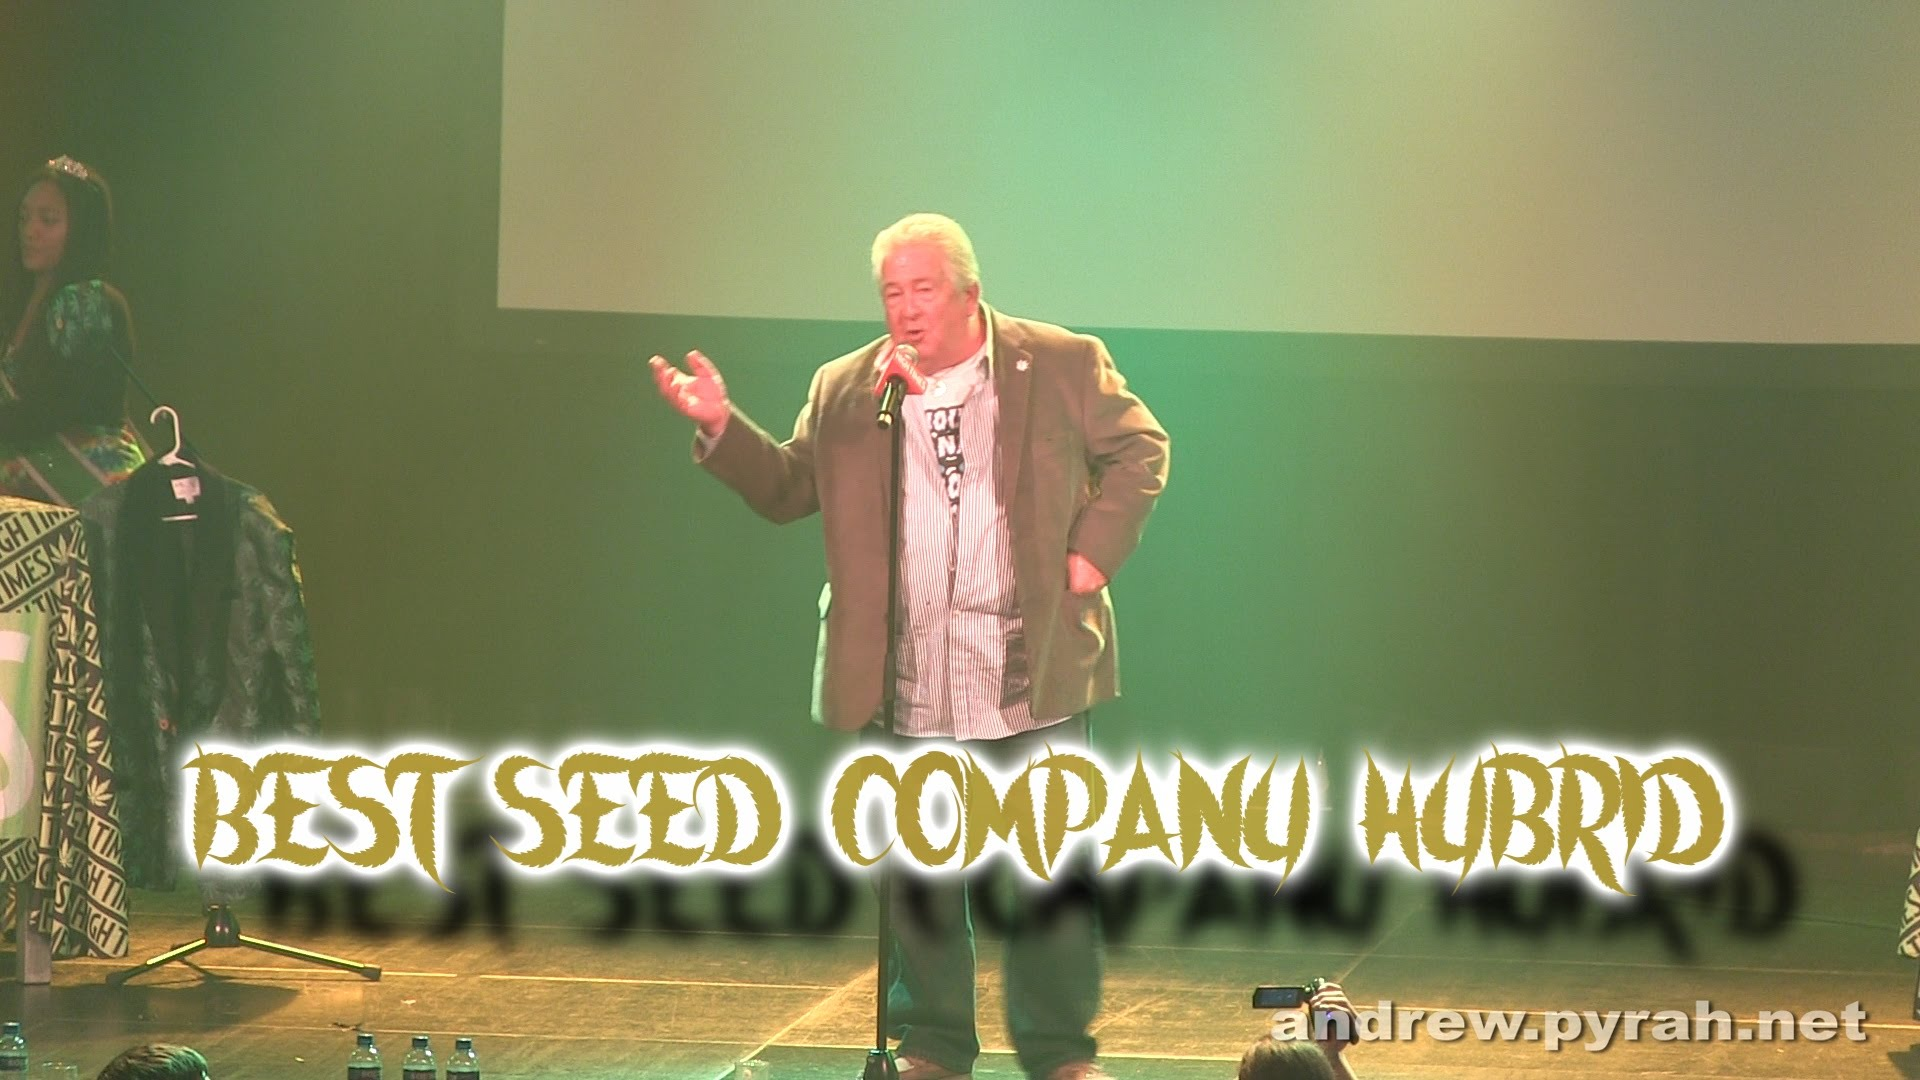 Best Seed Company Hybrid – Amsterdam Cannabis Cup Award Winners 2014